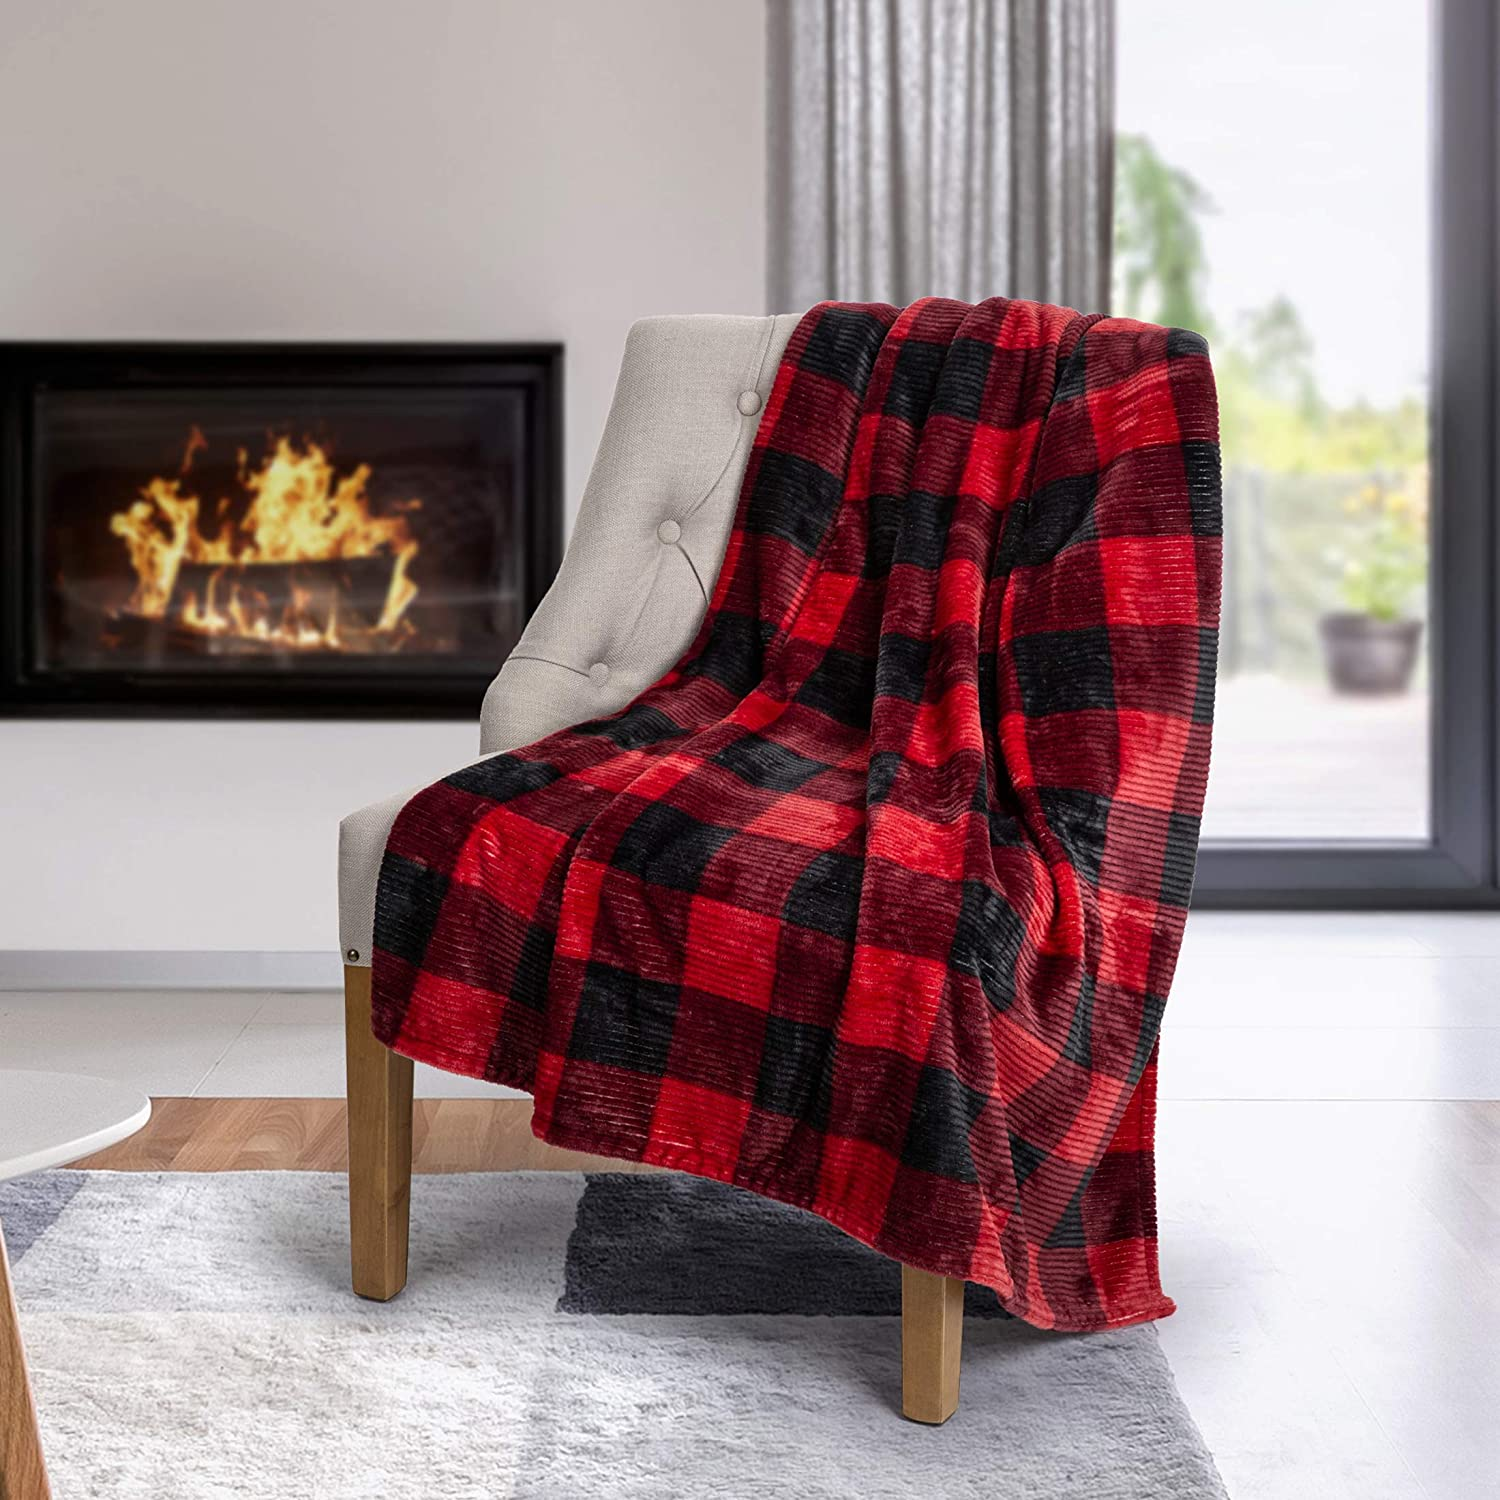 Safdie & Co. Throw Flannel Printed Ribbed 50x60 Red Plaid